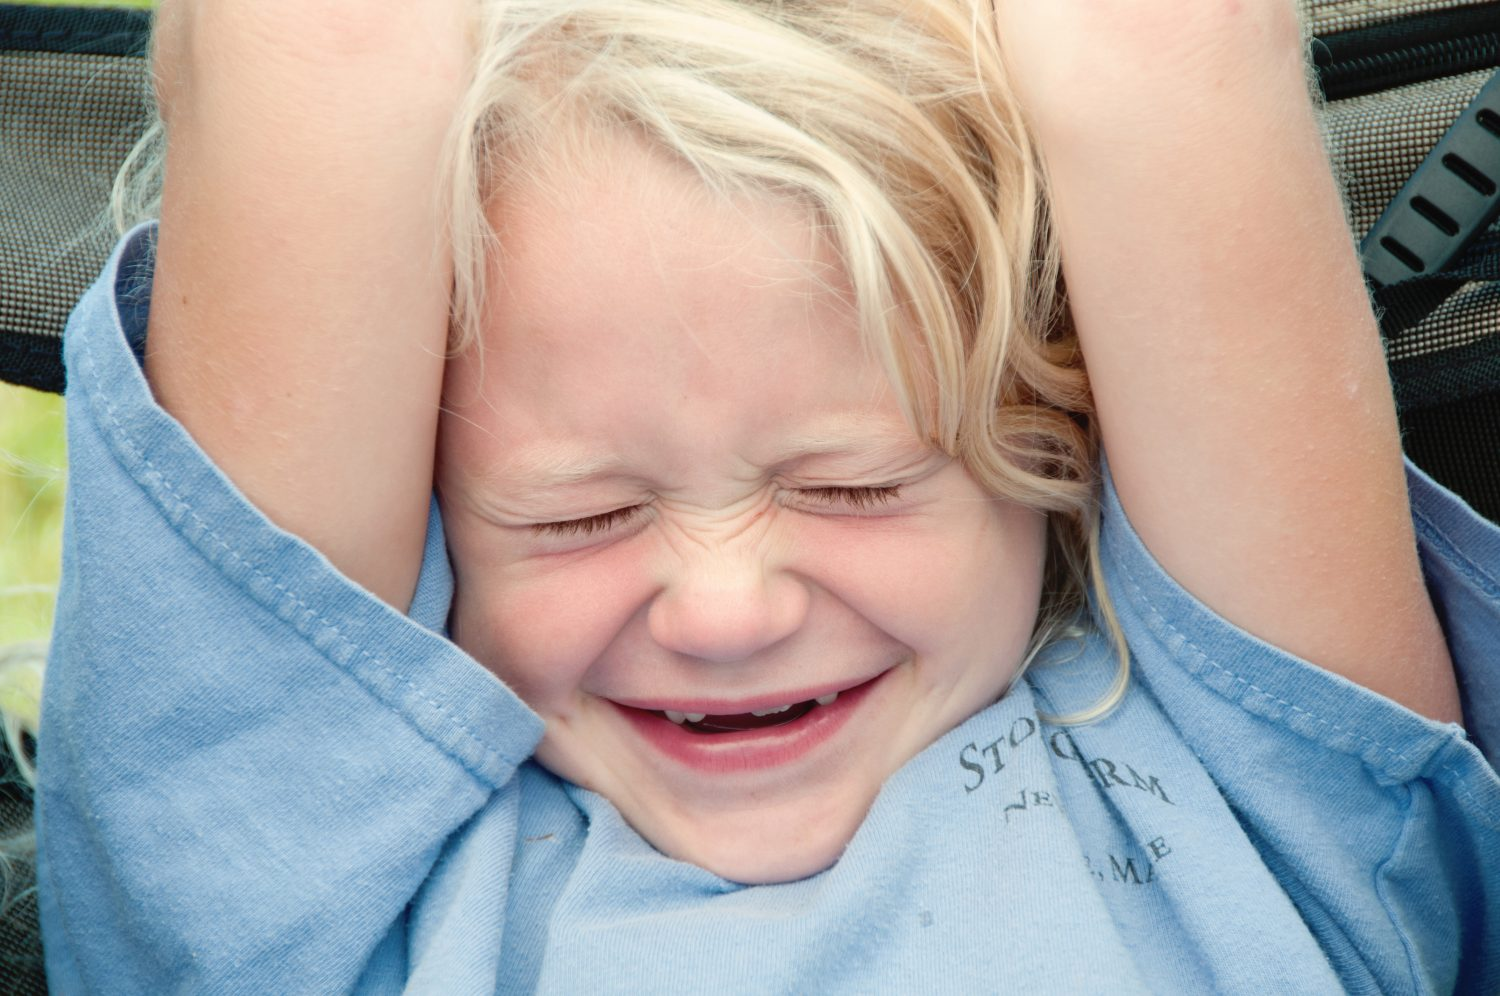 little blonde girl with missing front teeth smiling with eyes closed